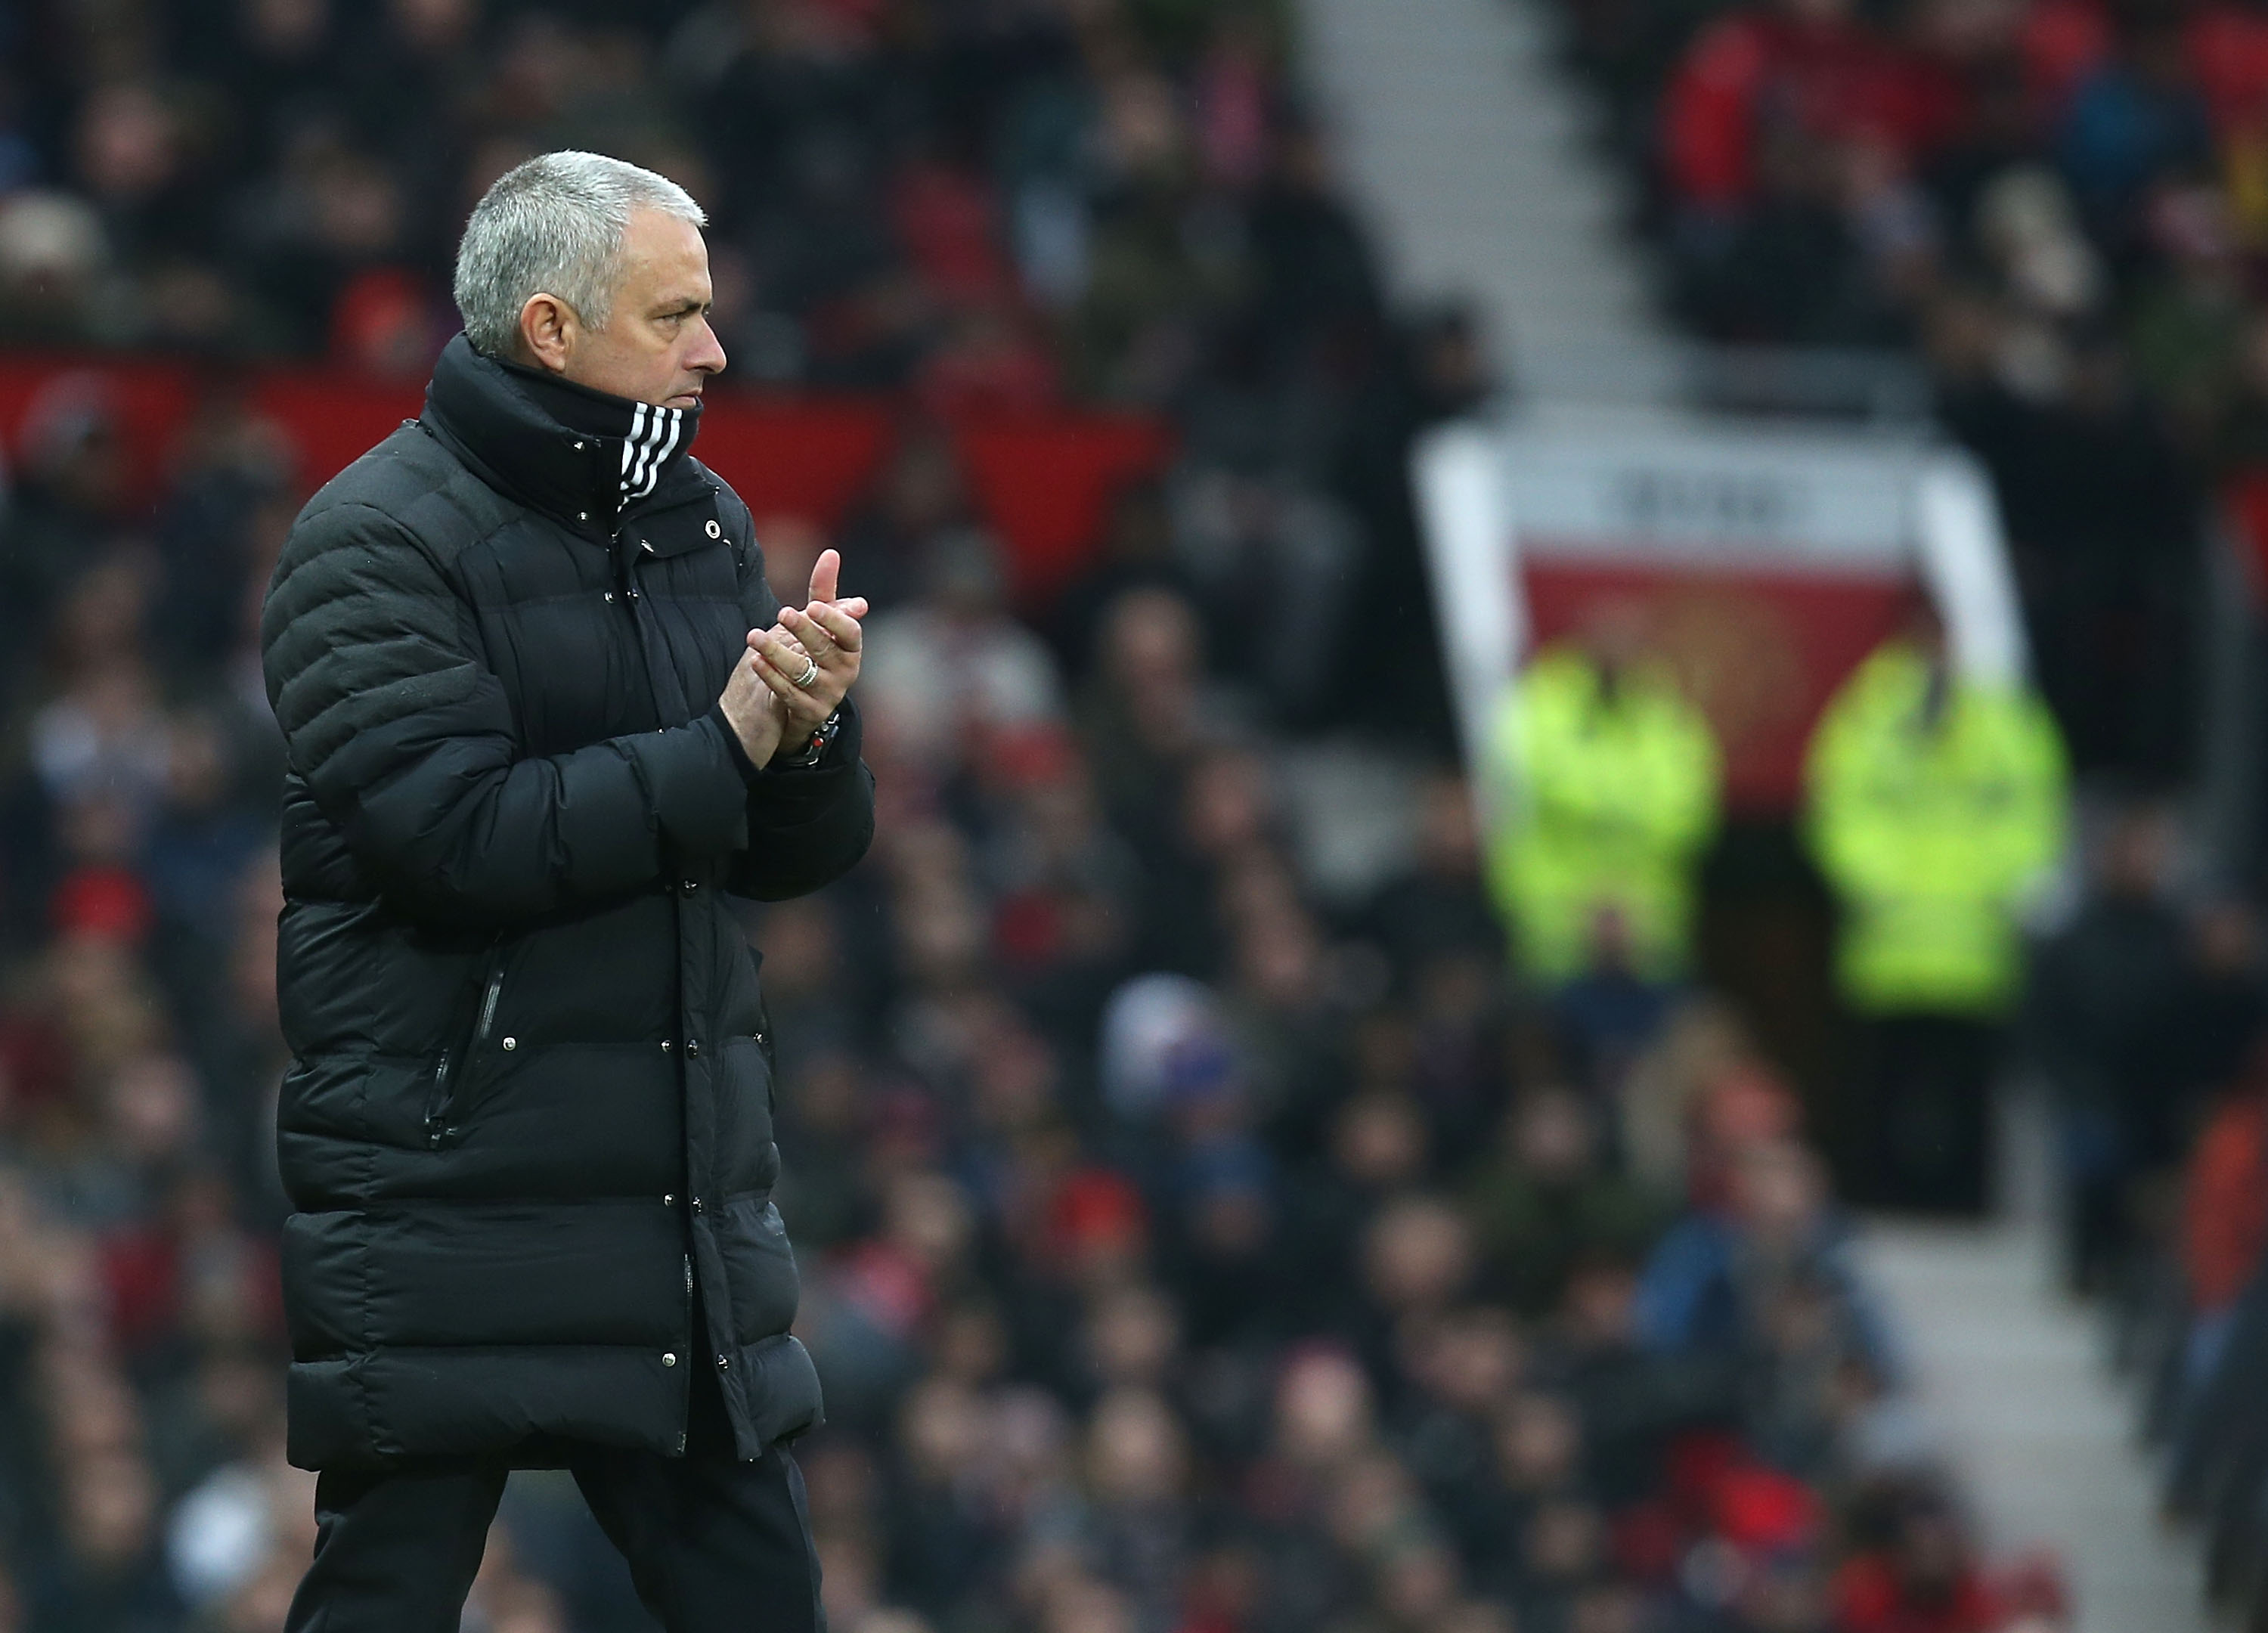 MANCHESTER, ENGLAND - FEBRUARY 11: Manager Jose Mourinho of Manchester United watches from the touchline during the Premier League match between Manchester United and Watford at Old Trafford on February 11, 2017 in Manchester, England. (Photo by Matthew Peters/Man Utd via Getty Images)